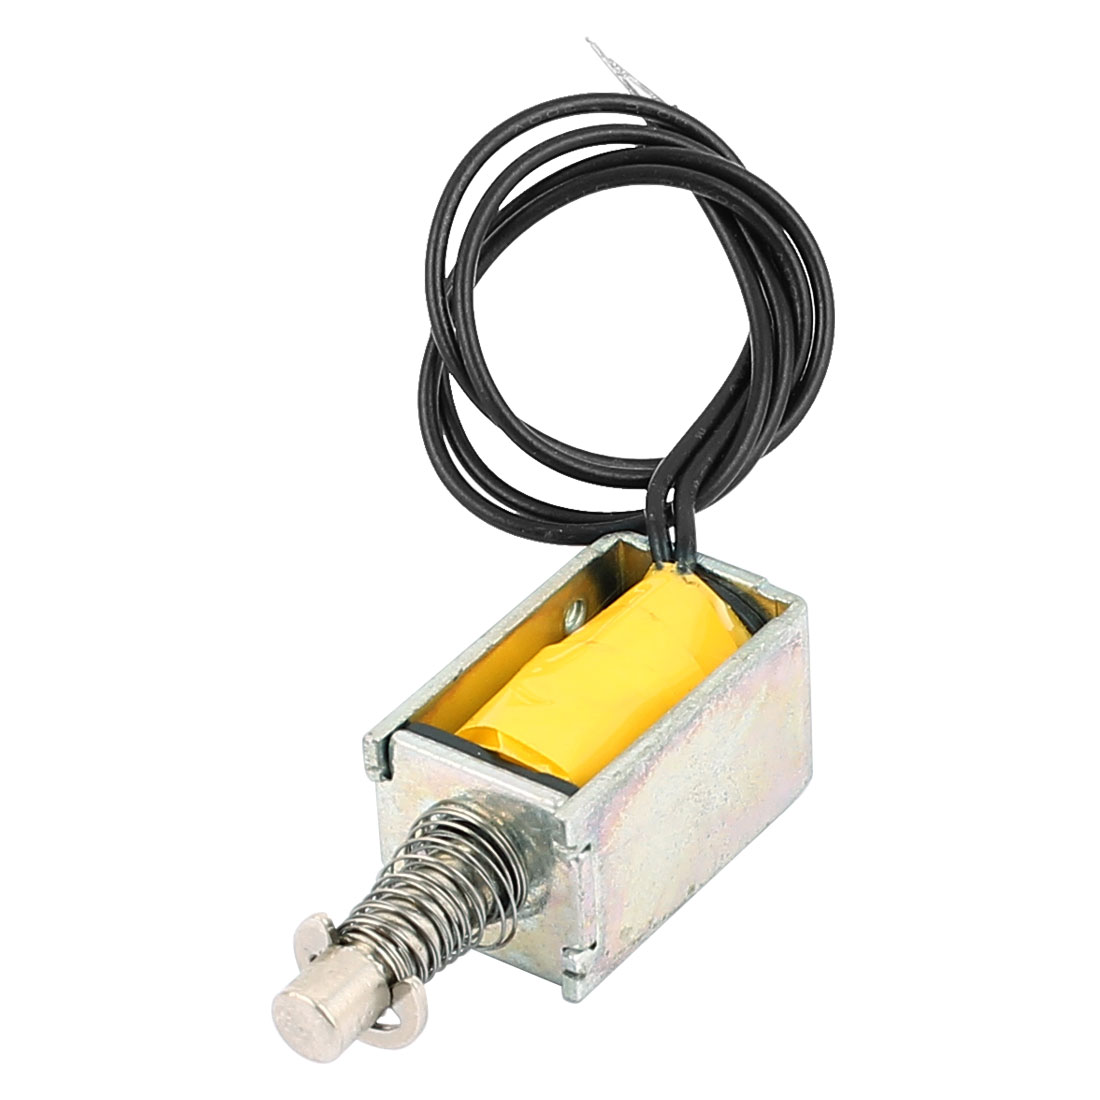 цена на UXCELL Hto-0420L3v06 3V 0.5A Pull Type Open Frame Actuator Electric Solenoid Electromagnet